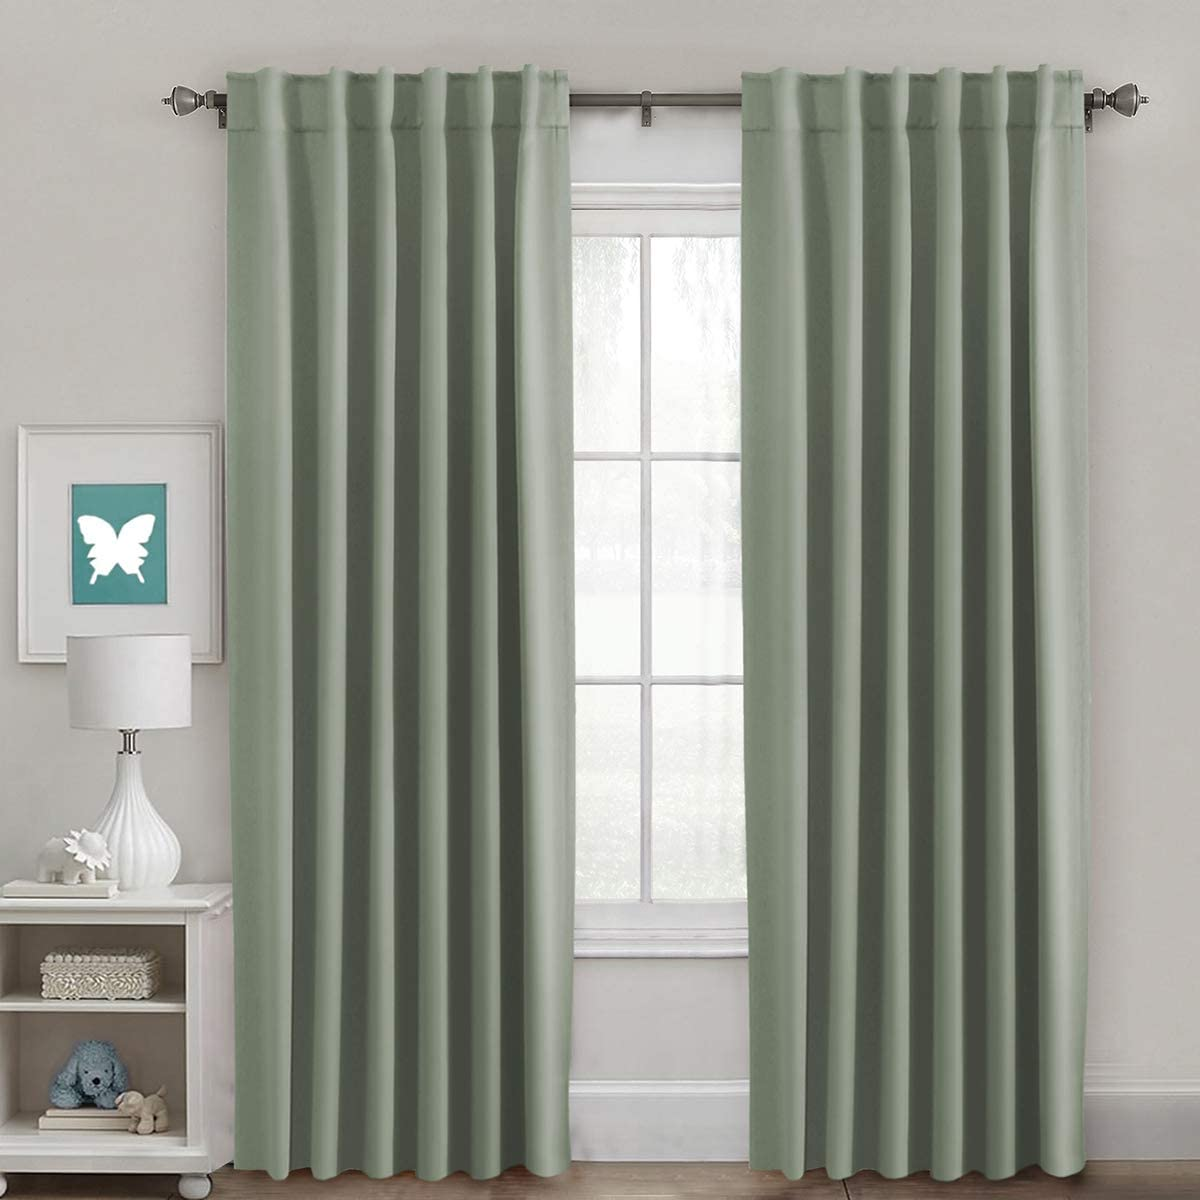 H.VERSAILTEX Full Blackout Room Darkening Curtains Window Panel Drapes, Back Tab/Rod Pocket Top Thermal Insulated Curtains, 2 Panels, 52 x 84 Inch, Sage